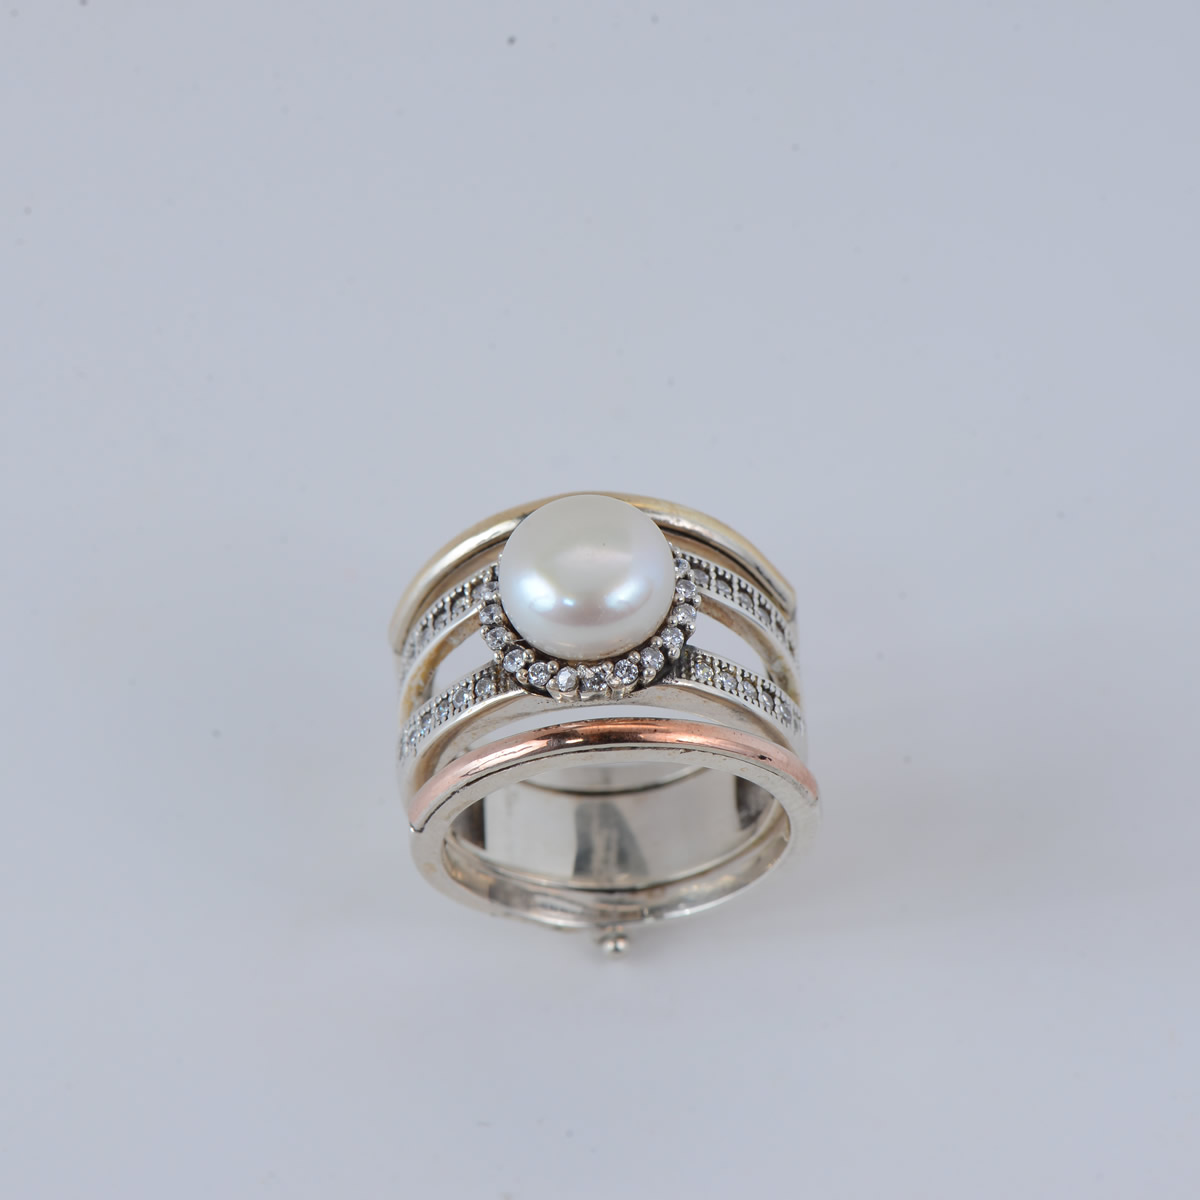 Elegant Sterling Silver Ring with Goldtone Plating and Fresh Water Pearl